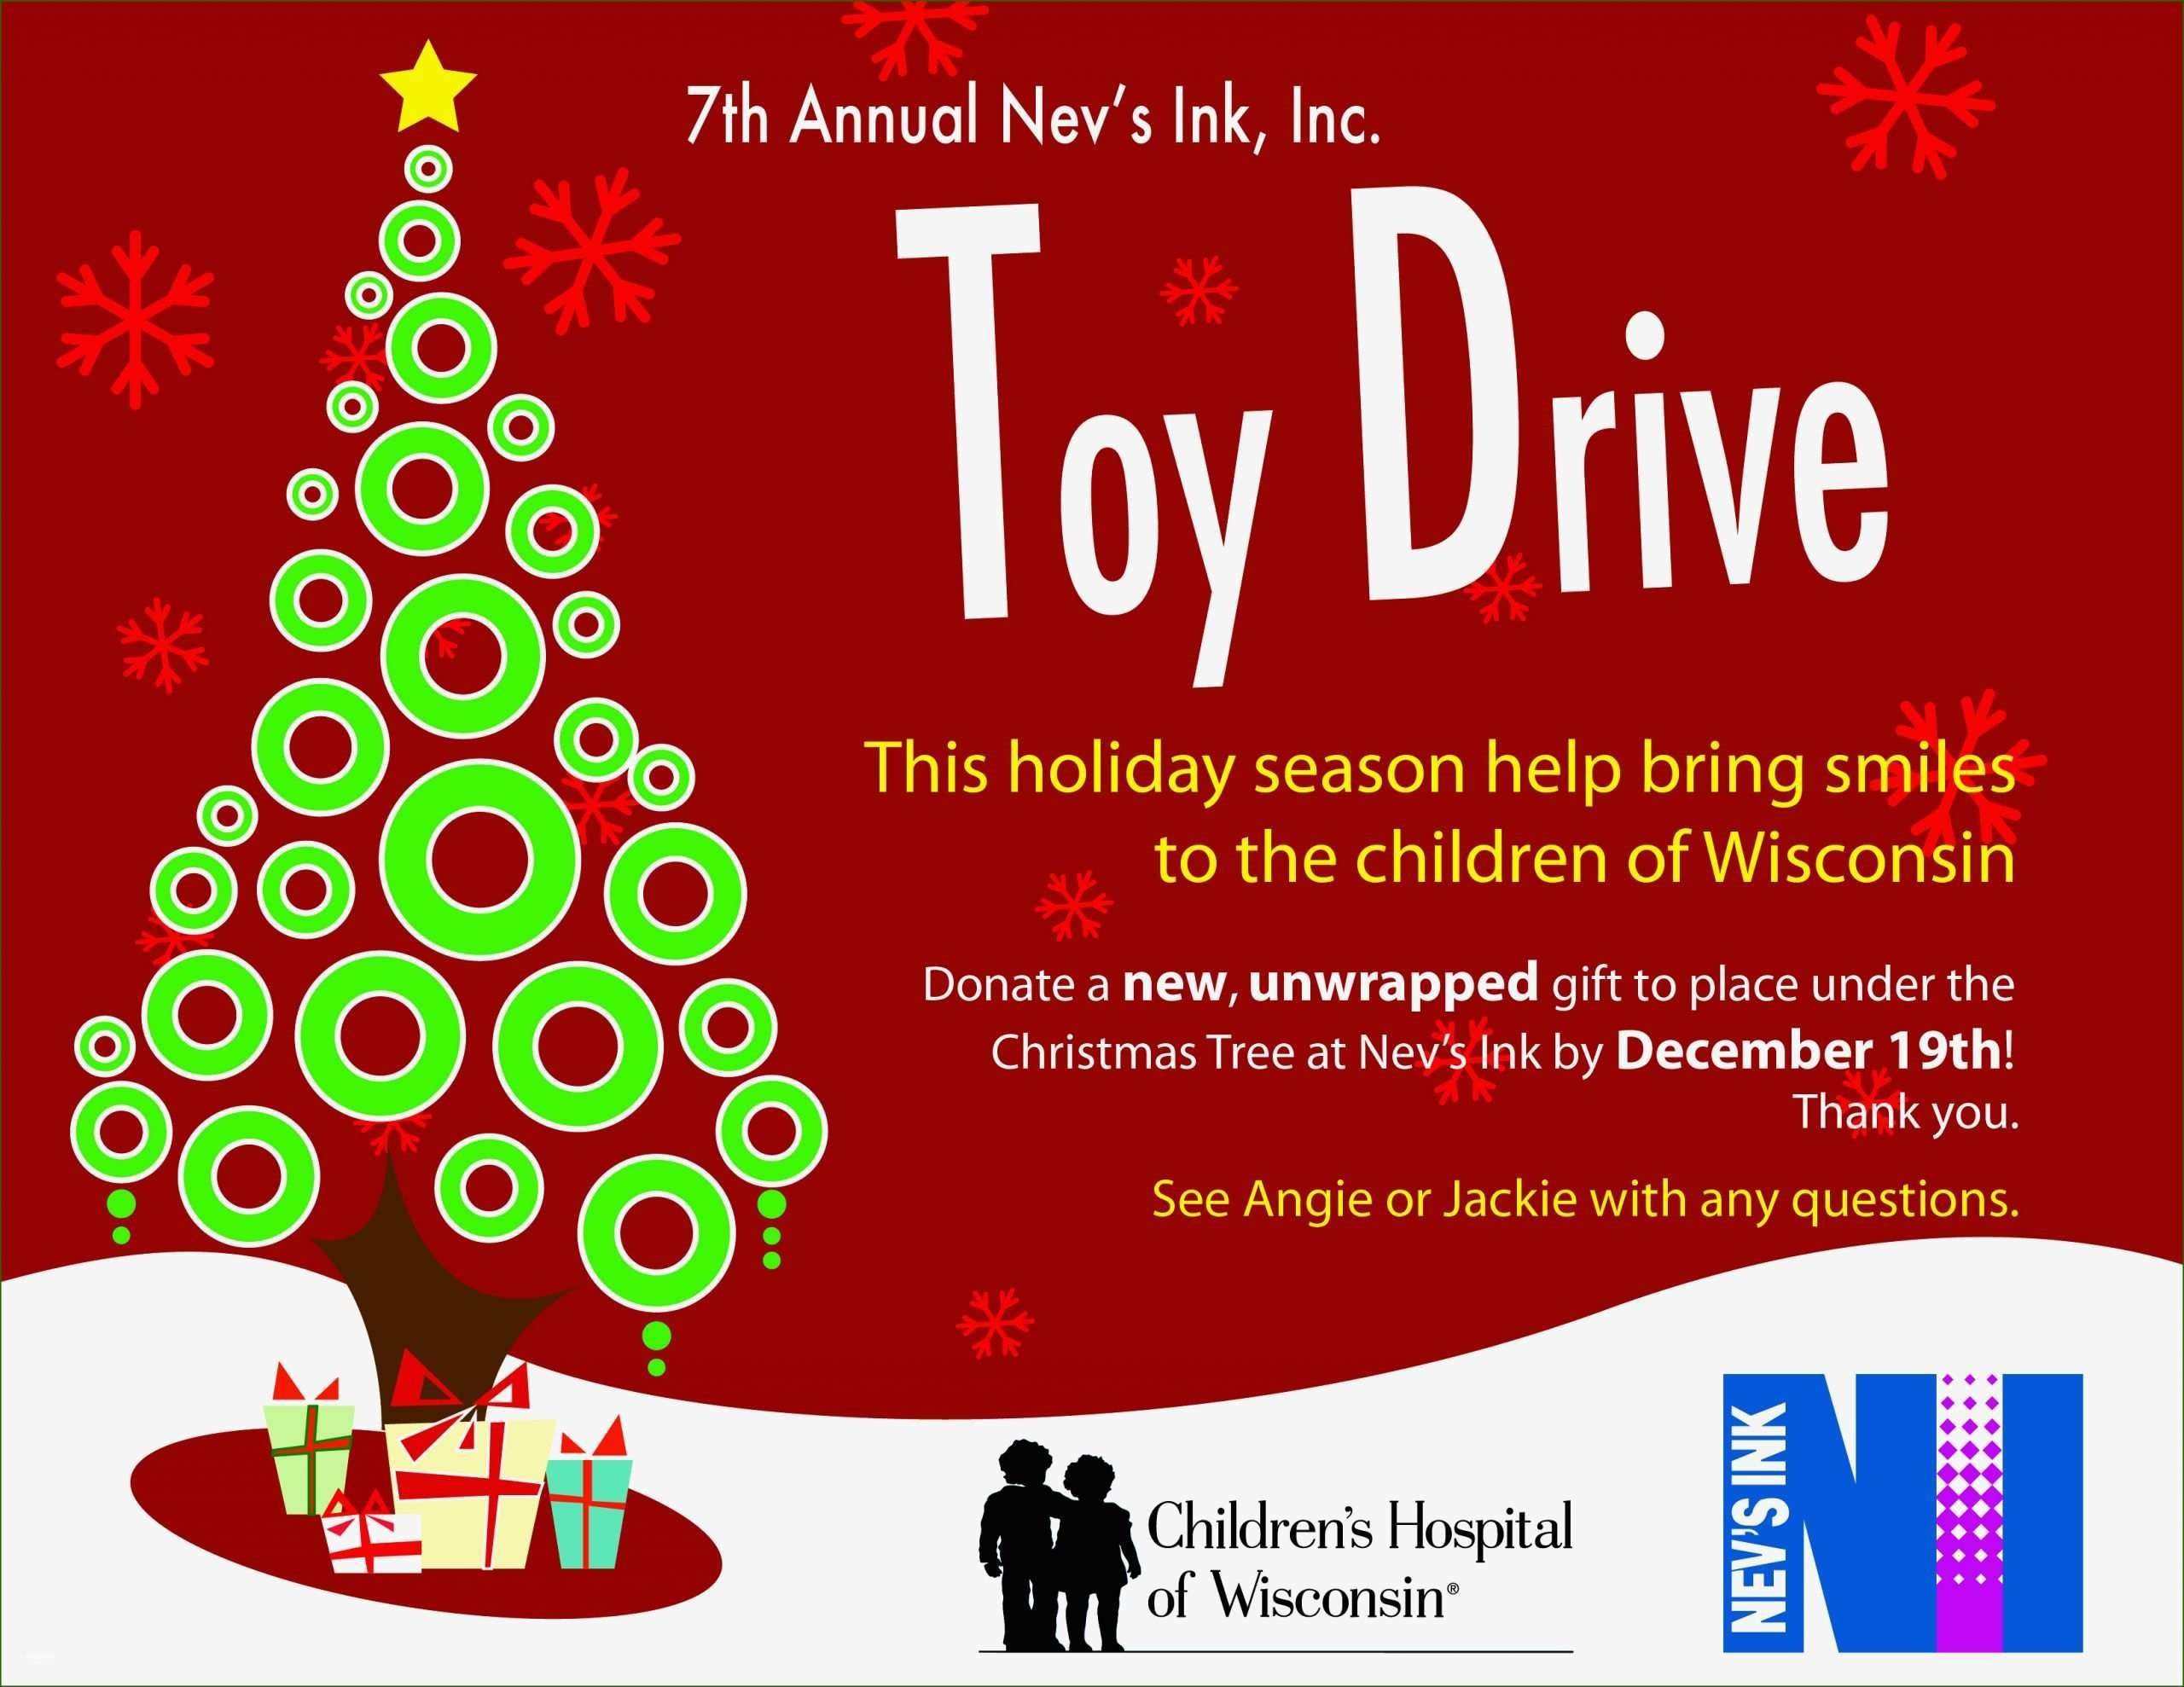 005 Unusual Toy Drive Flyer Template Free Photo  Download ChristmaFull